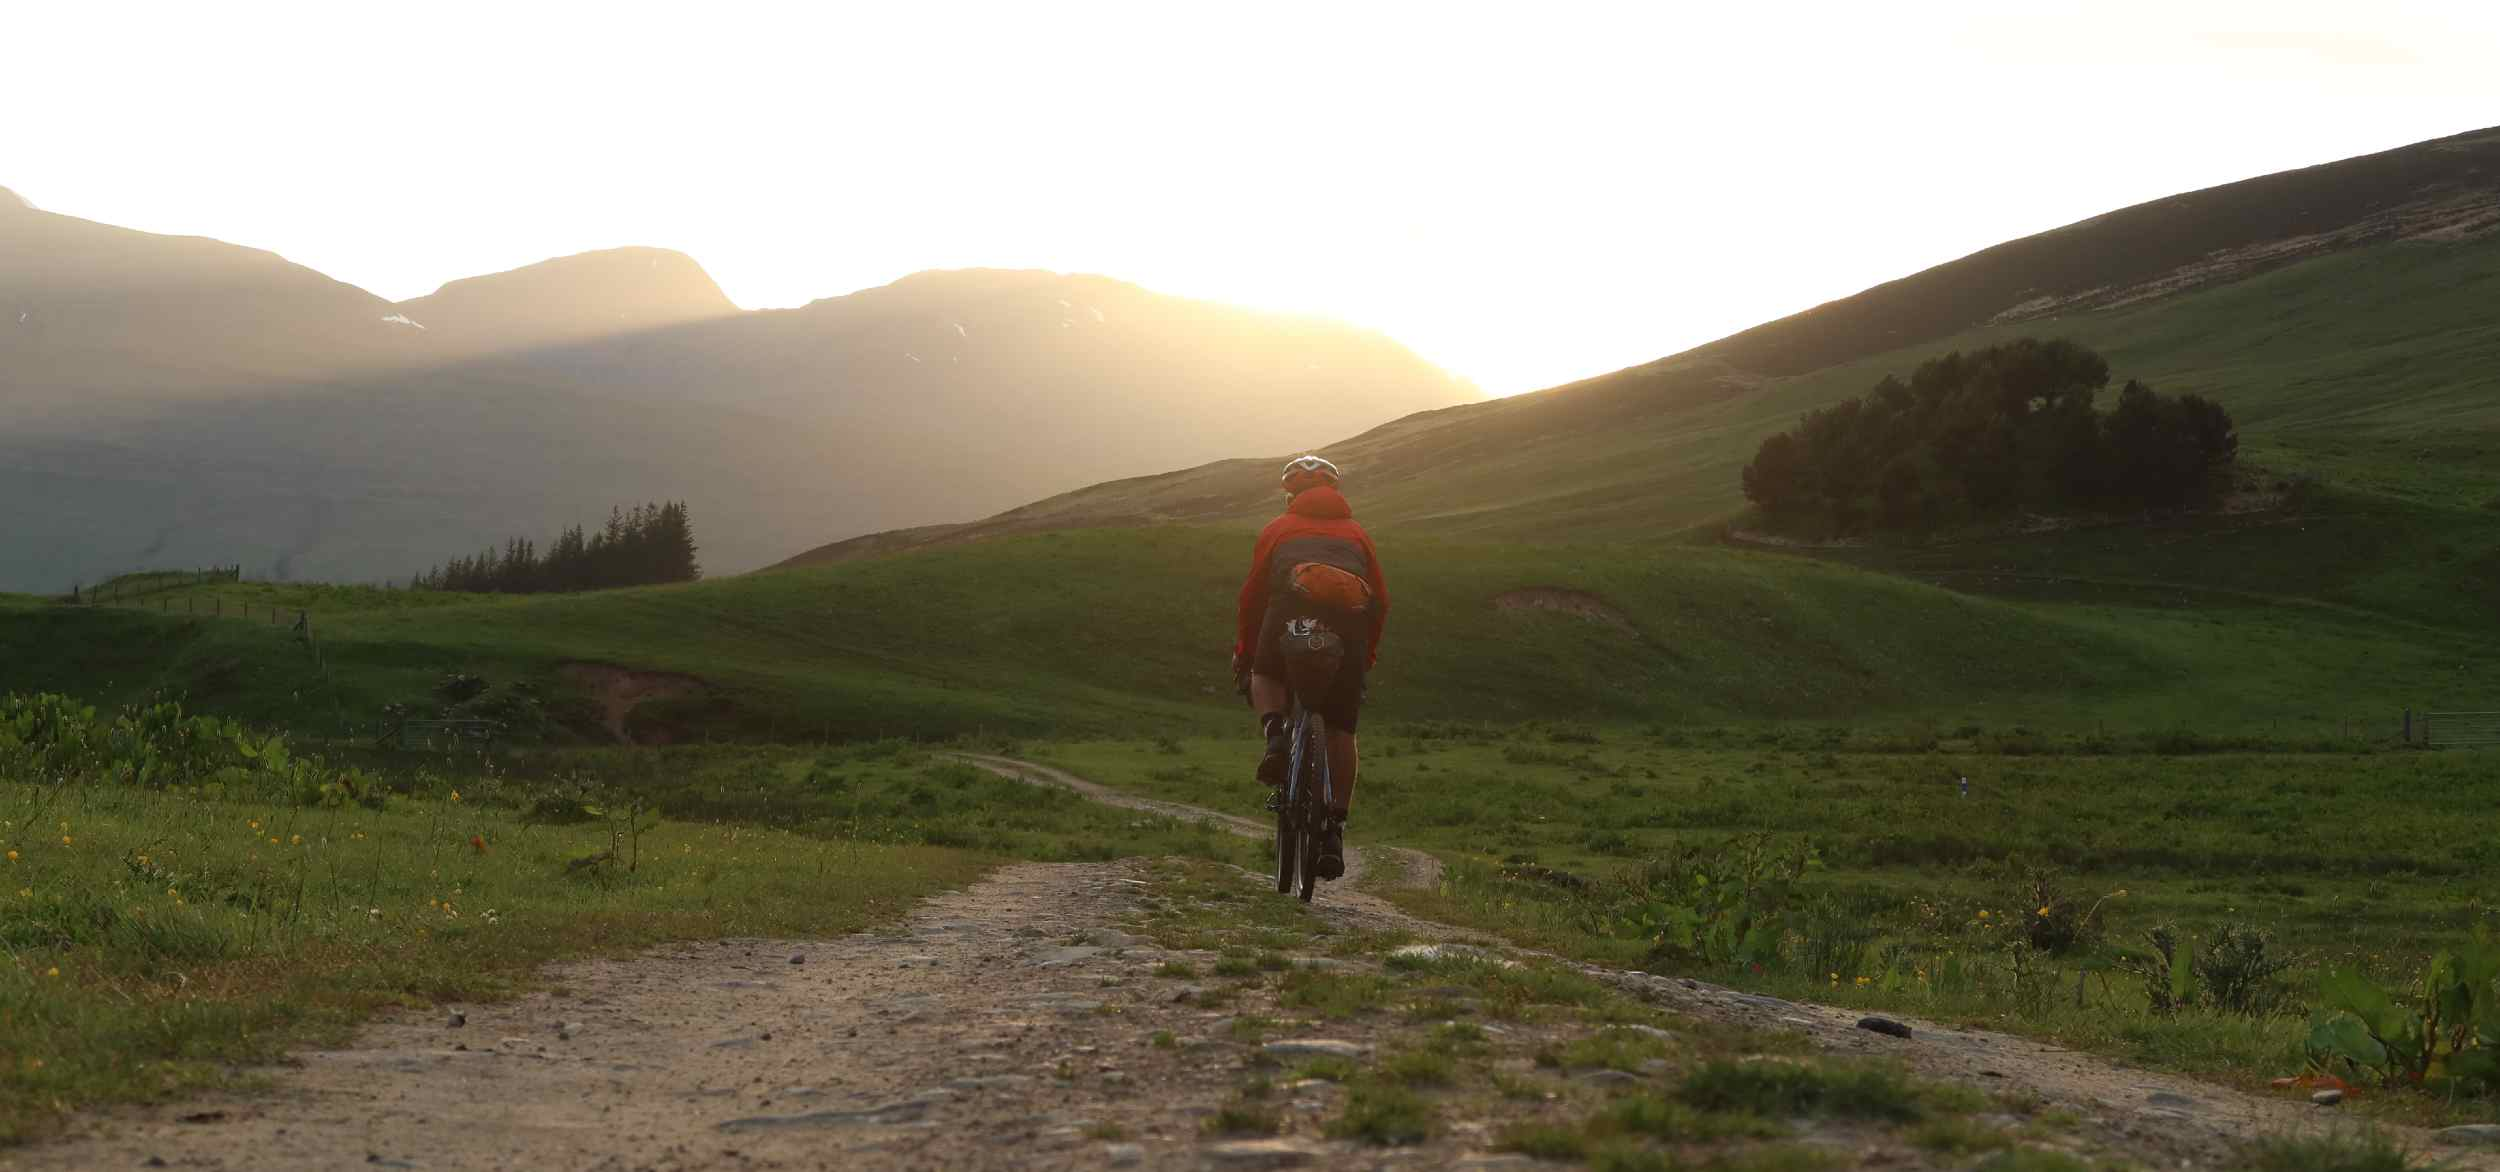 Markus Stitz riding the Drovers Trail at sunset